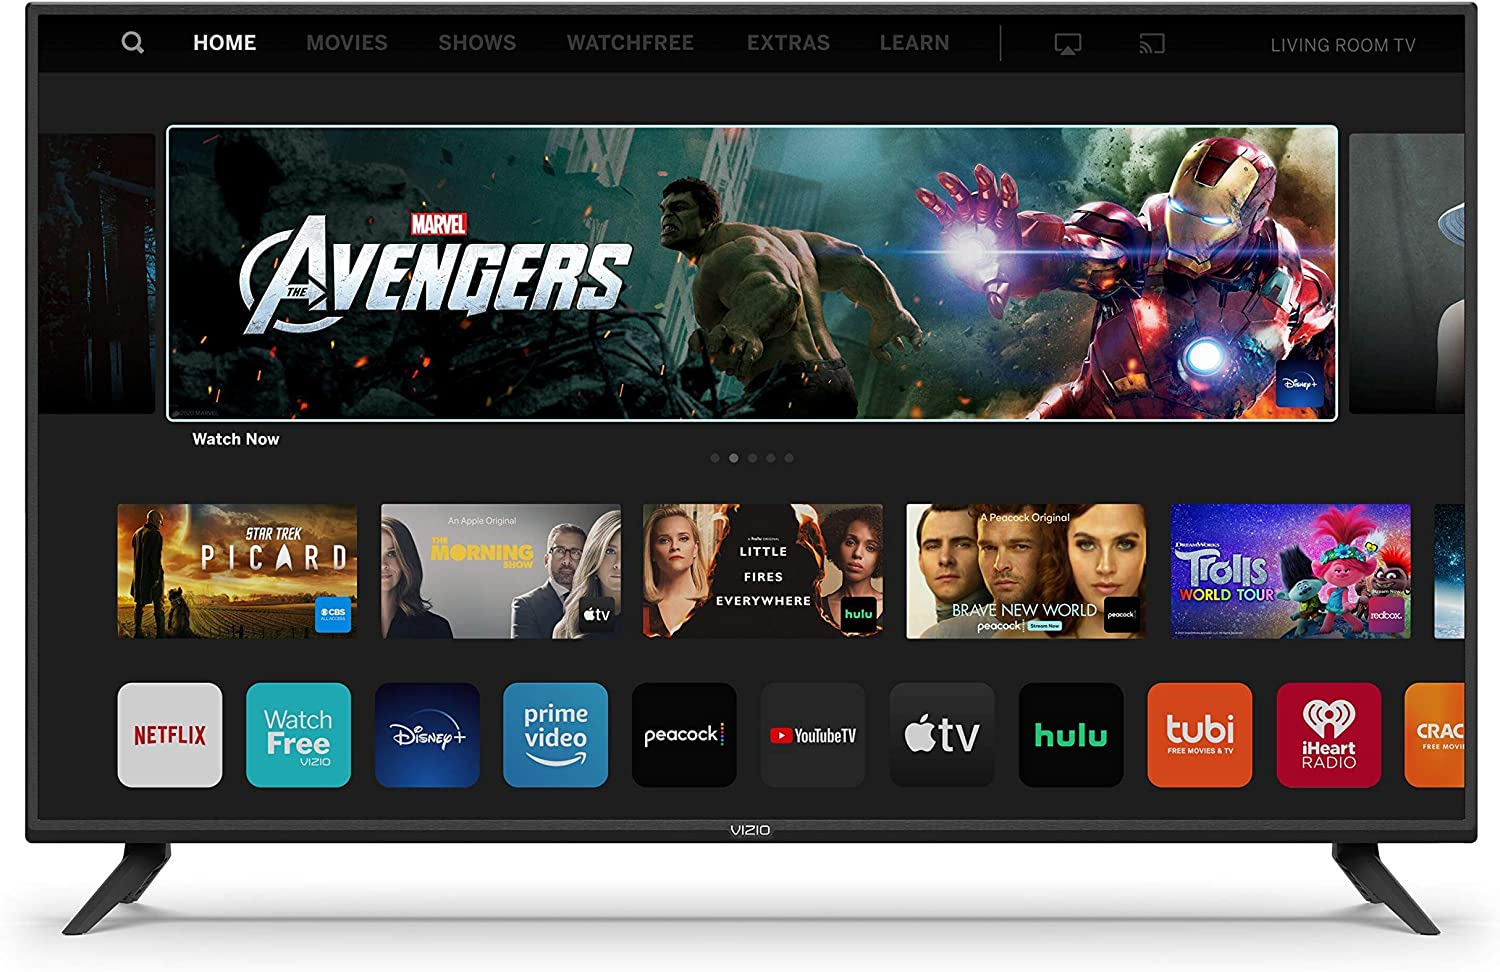 VIZIO 40-Inch V-Series - 4K UHD LED HDR Smart TV with Apple AirPlay and Chromecast Built-in, Dolby Vision, HDR10+, HDMI 2.1, Auto Game Mode and Low Latency Gaming (V405-H69, 2020) (Renewed)